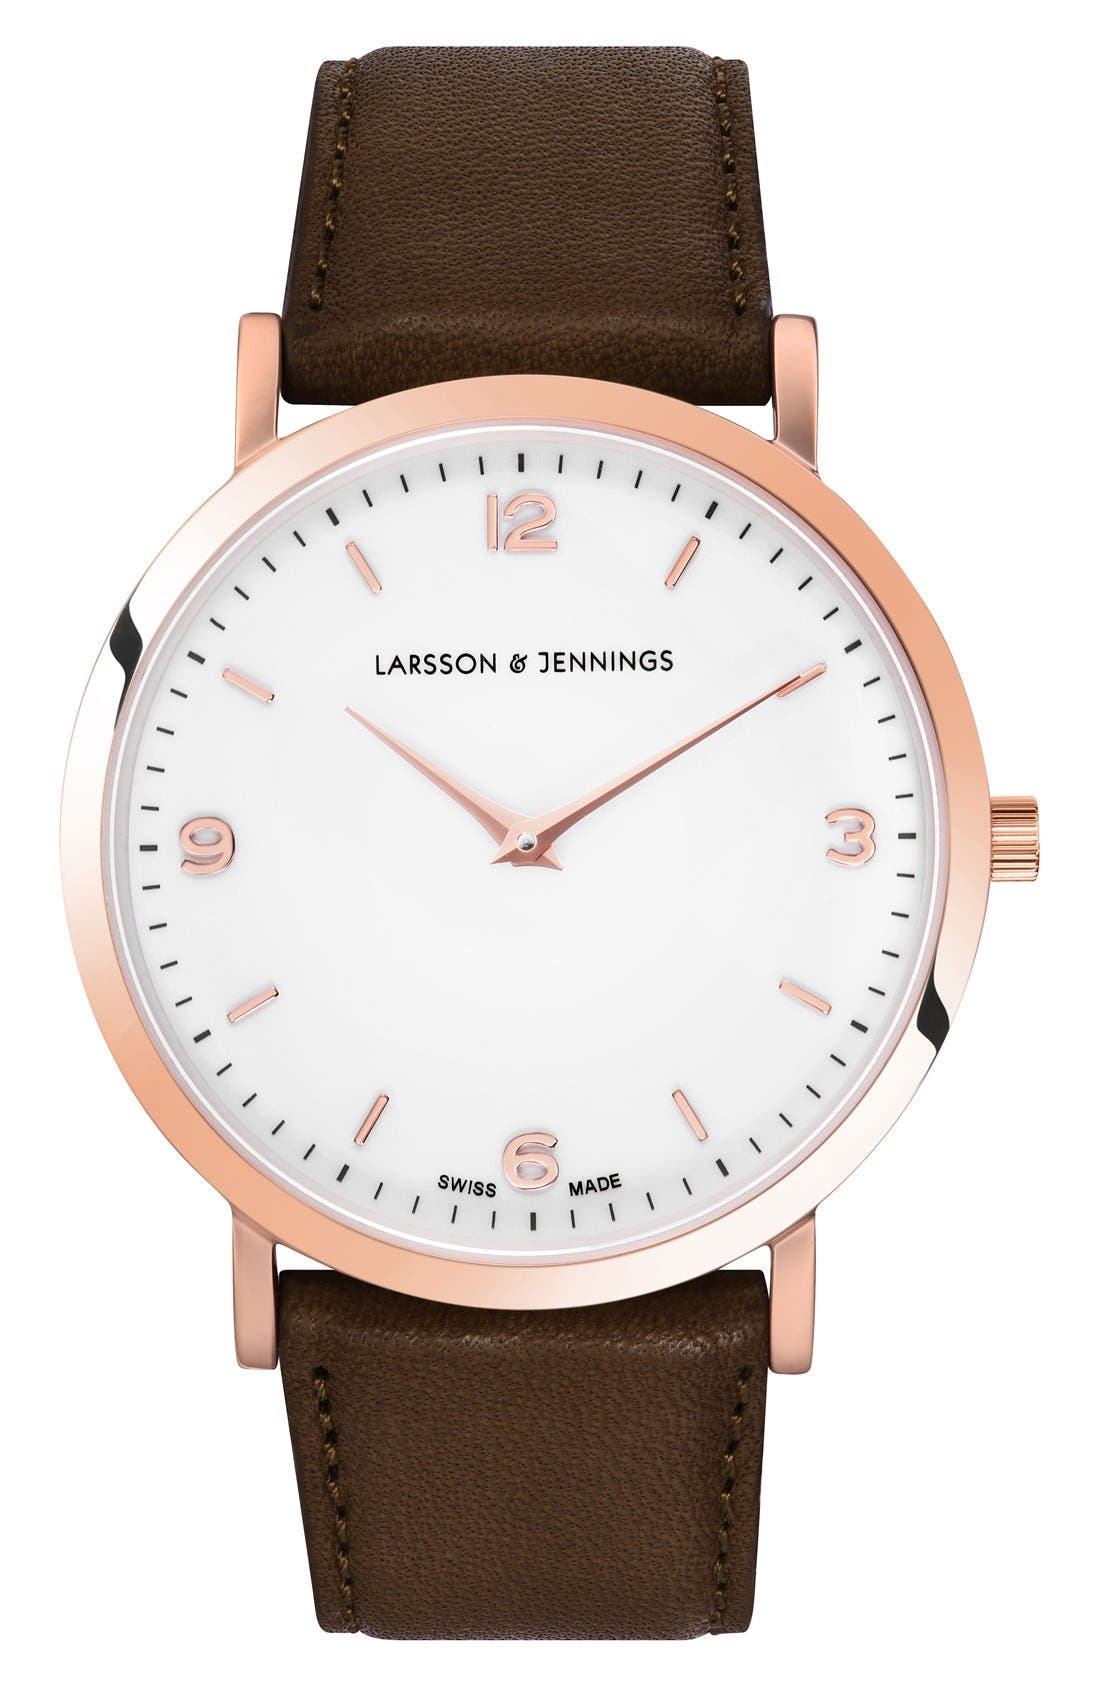 Larsson & Jennings Lugano Leather Strap Watch, 38mm